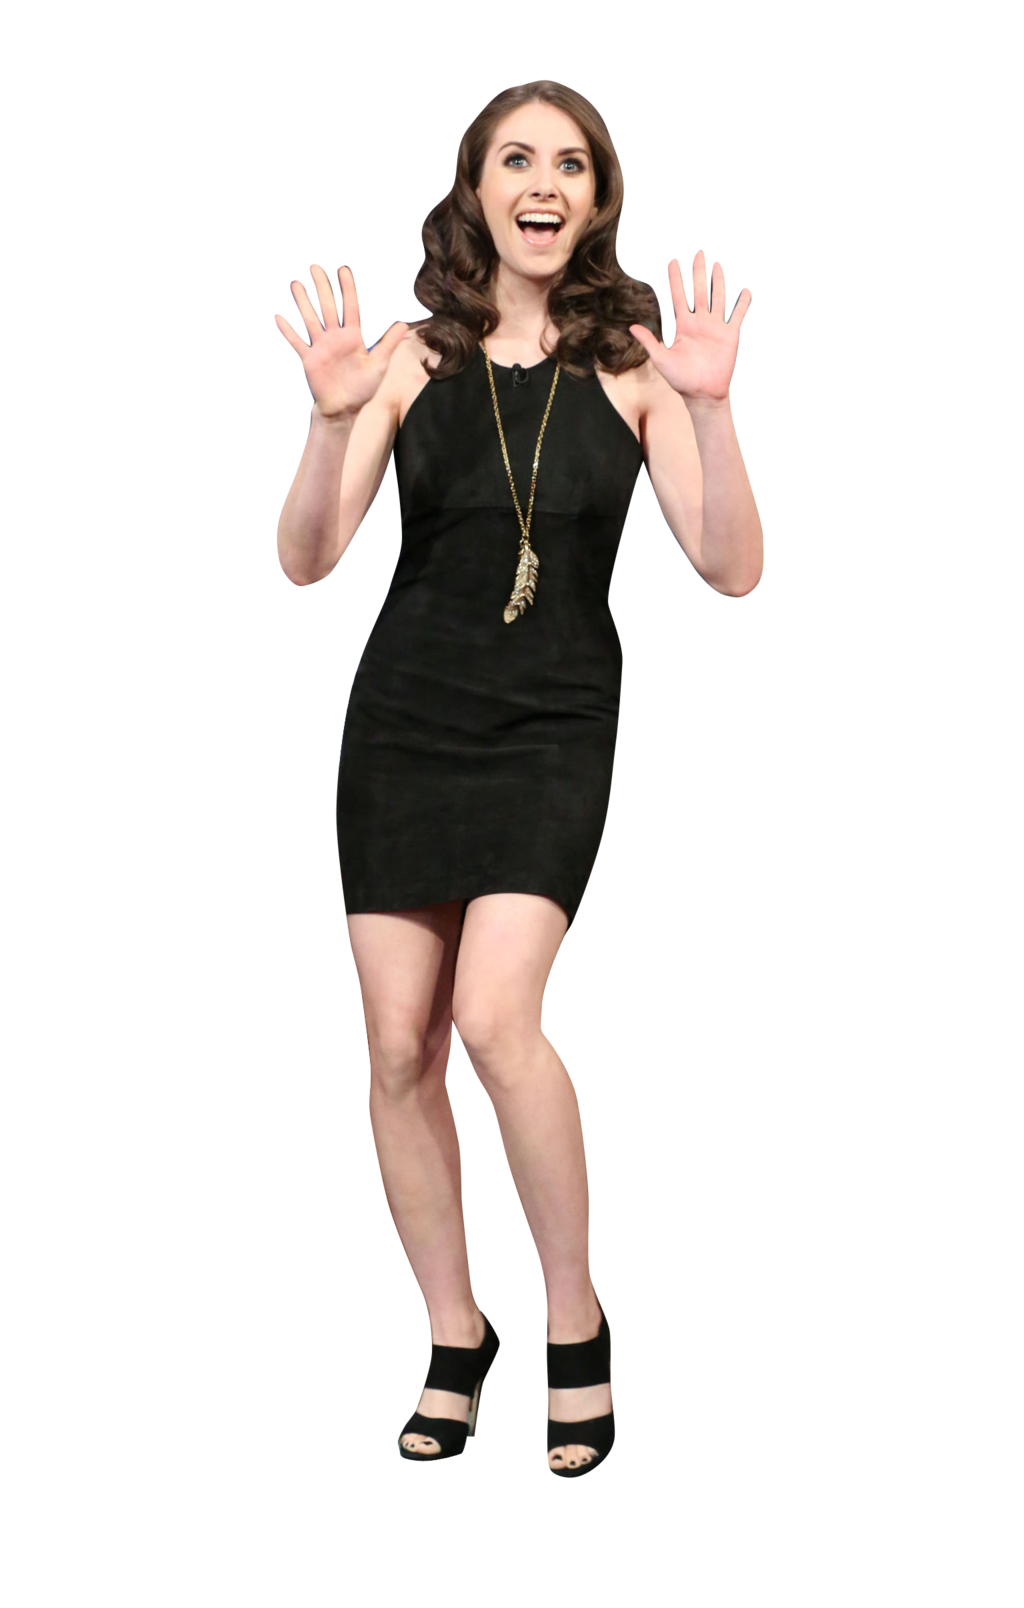 Women Pic PNG Transparent Women Pic.PNG Images..